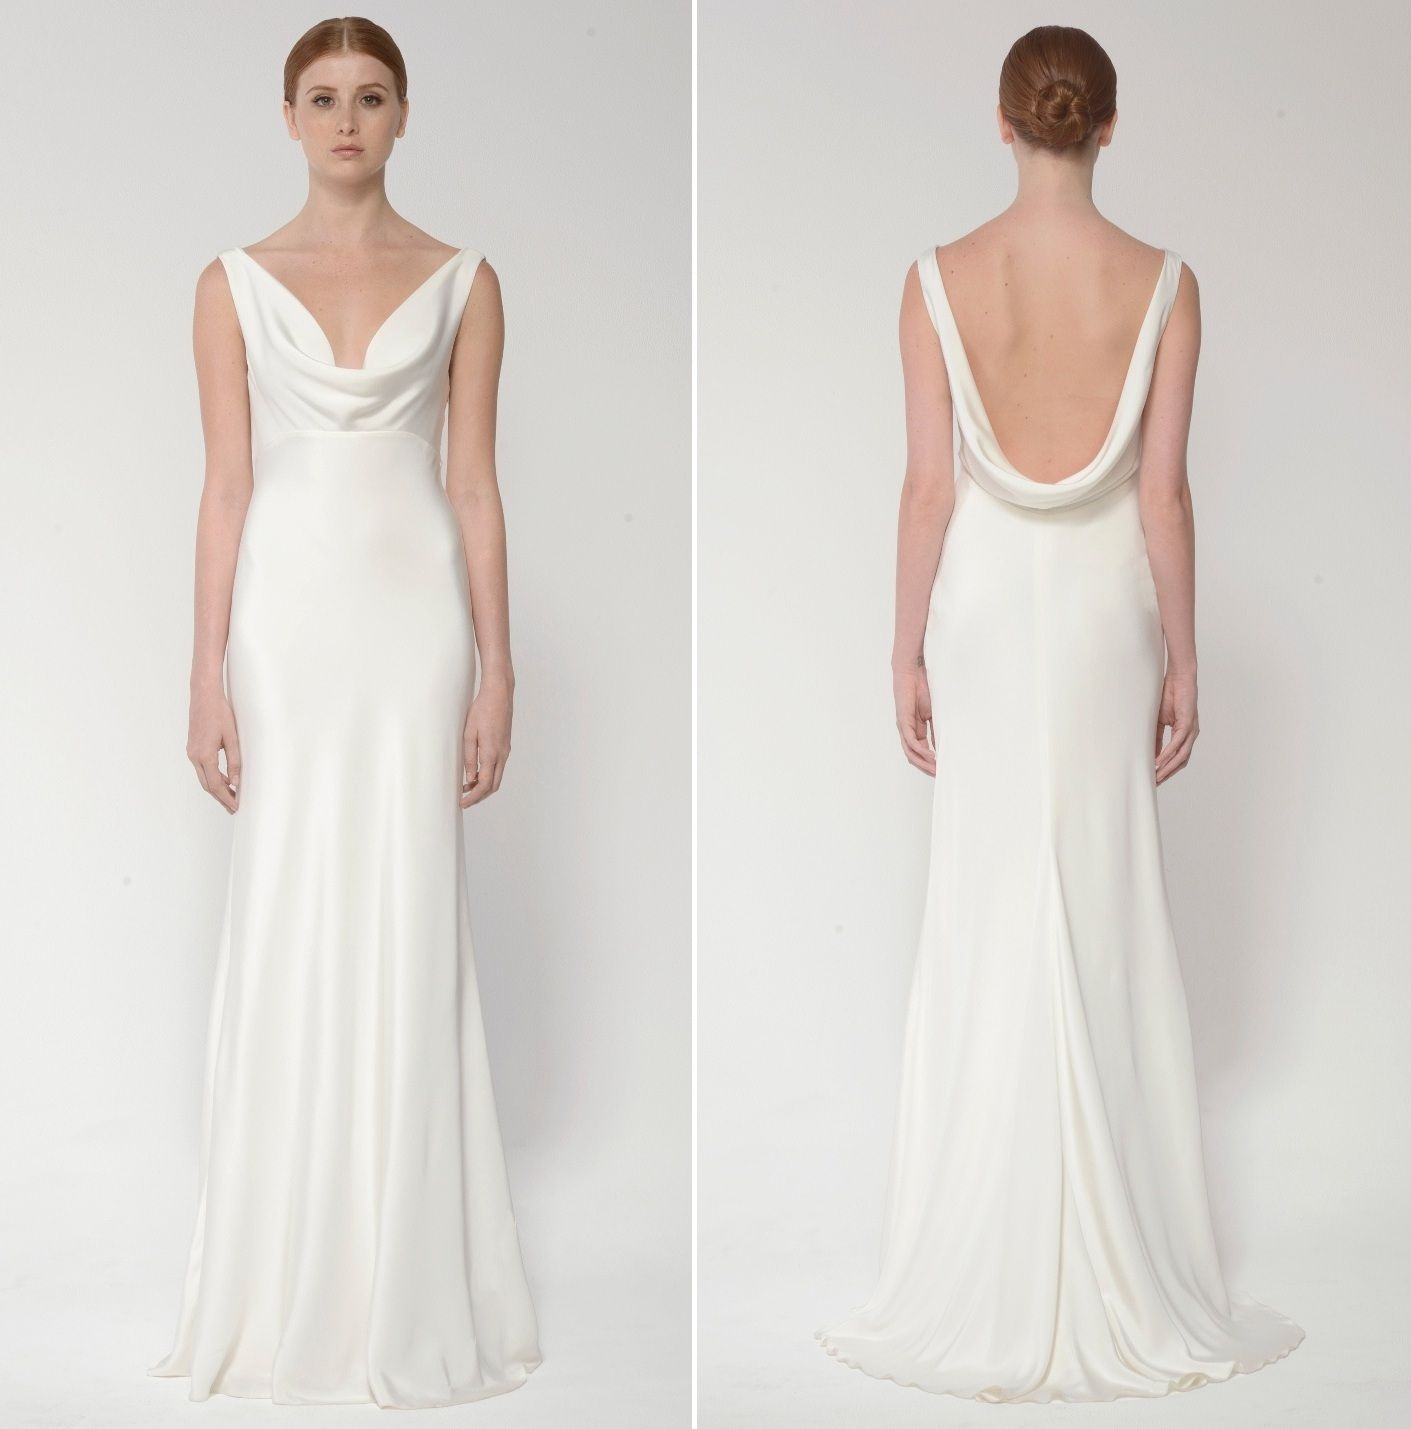 Cowl Neck Wedding Dress: Monique Lhuillier's Bliss Collection At Paperswan Bride